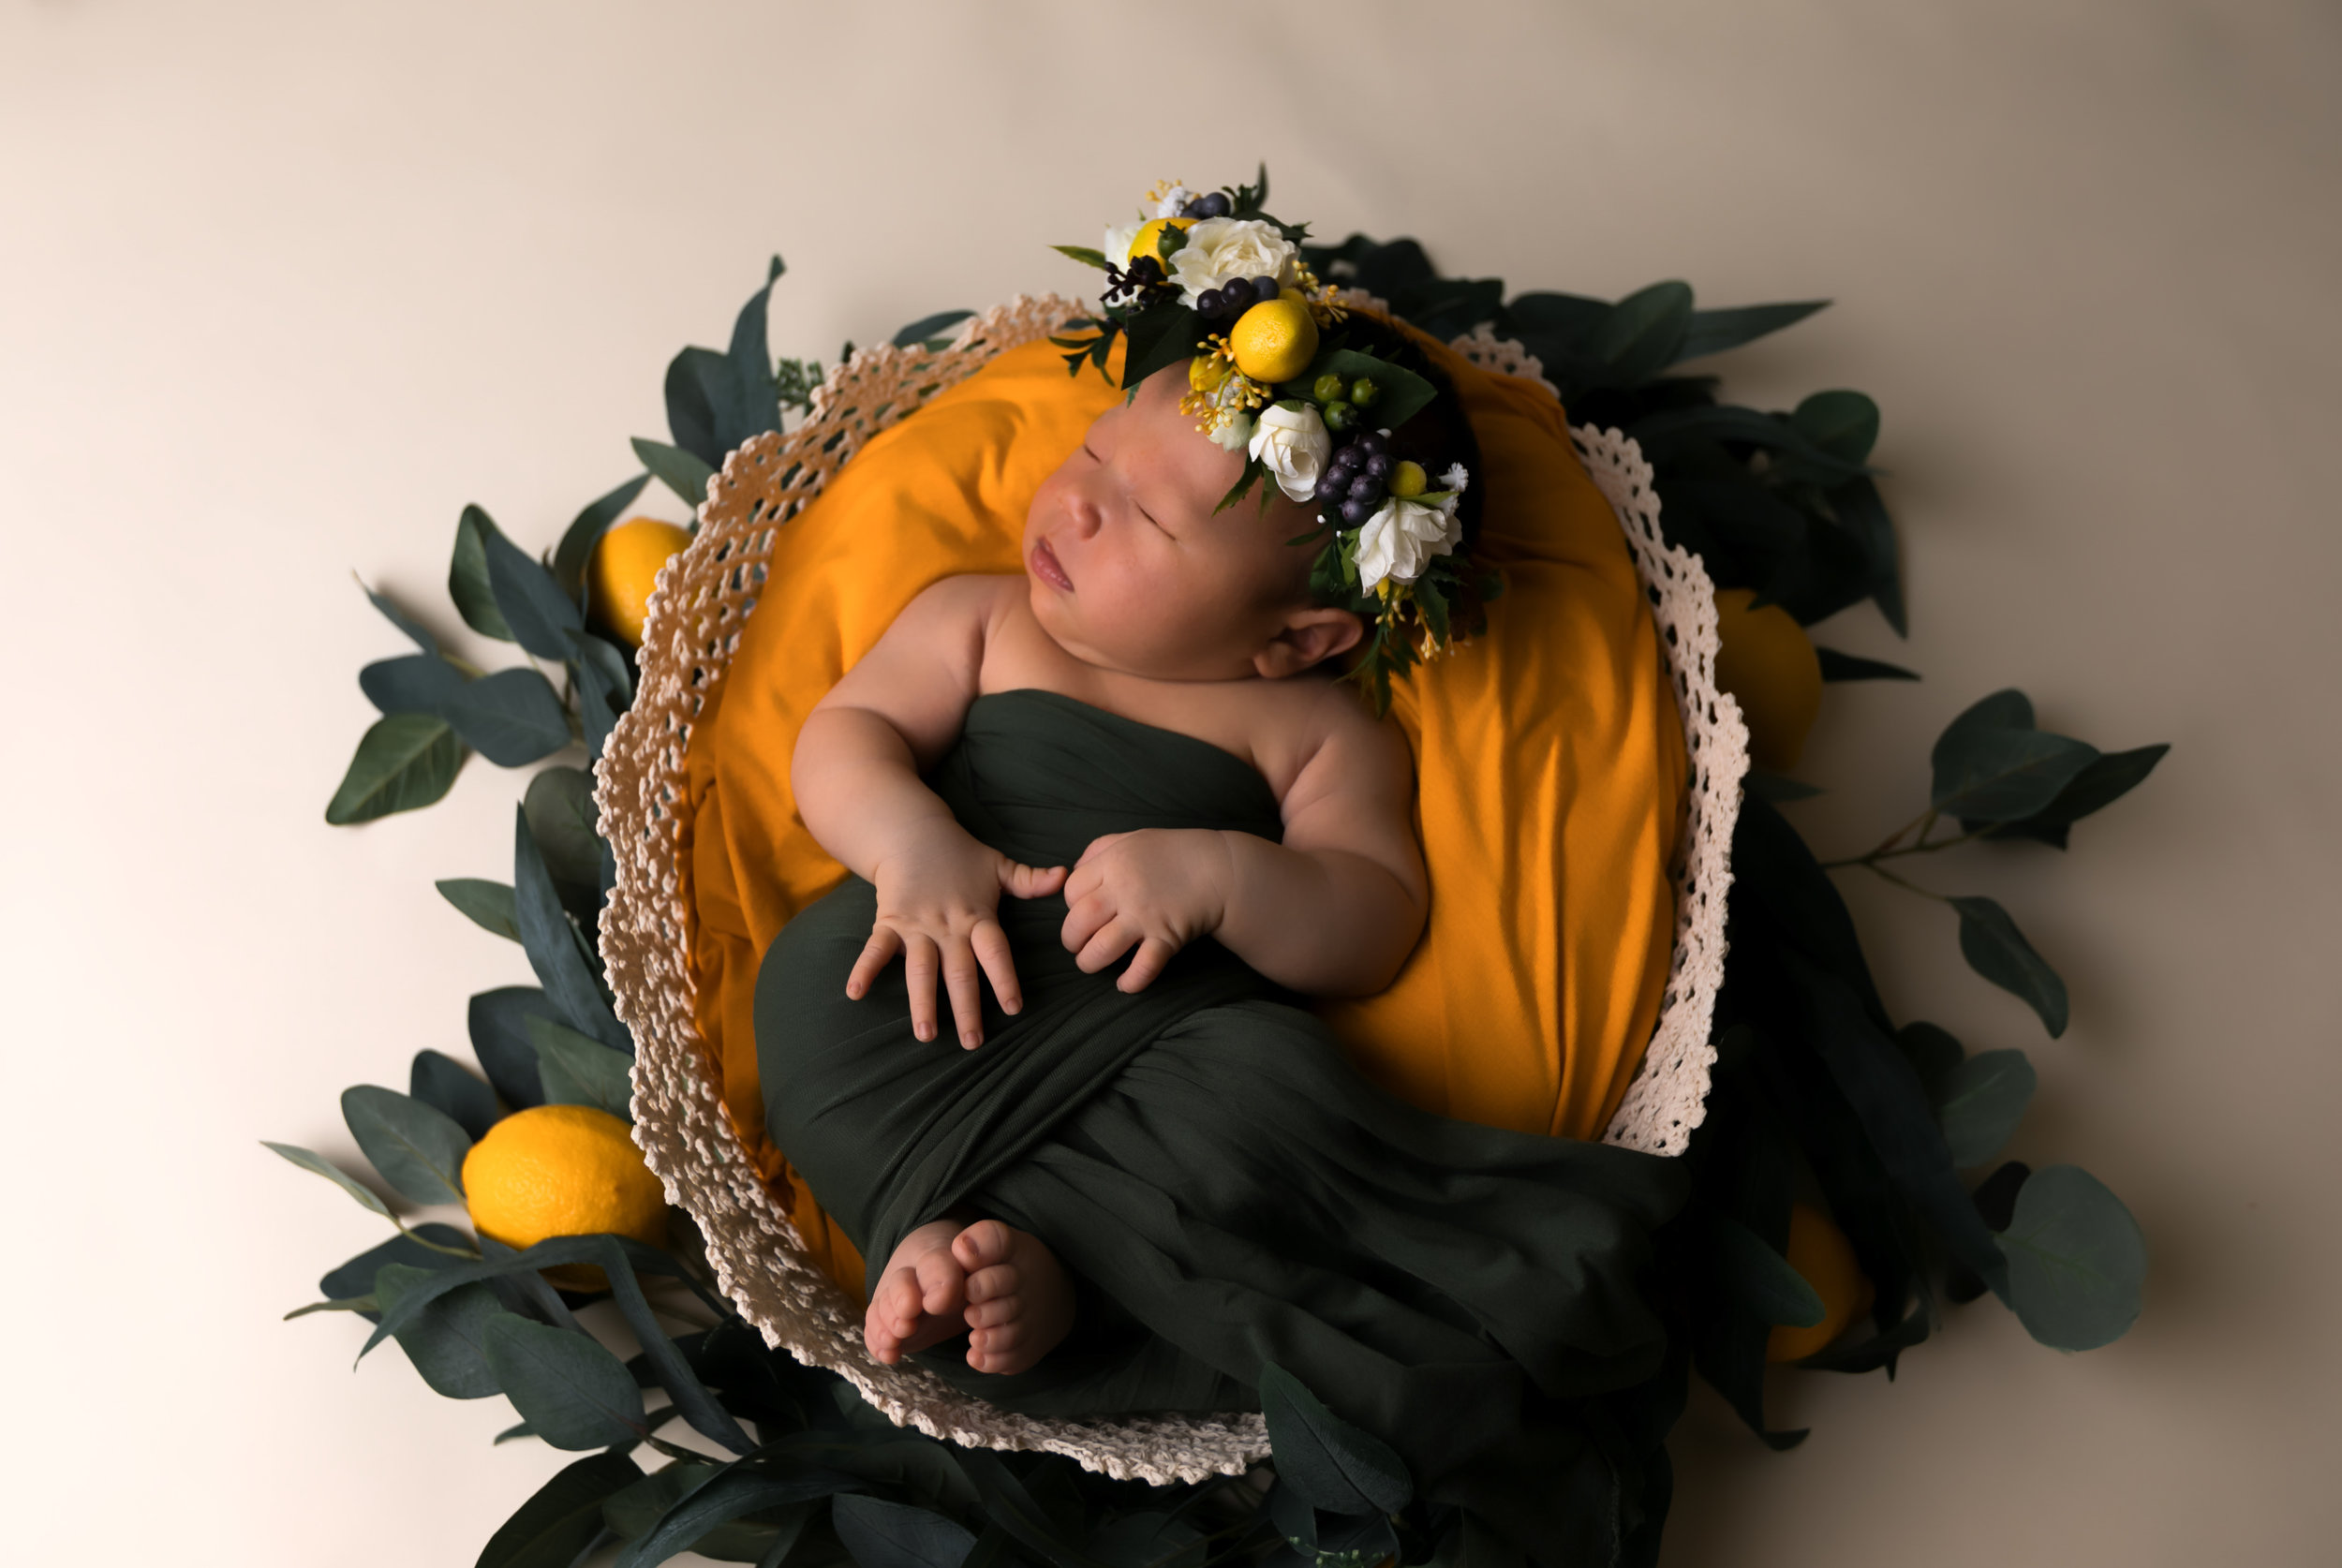 newborn photo shoot newborn studio photography kailua oahu hawaii storm elaine photography-2.jpg